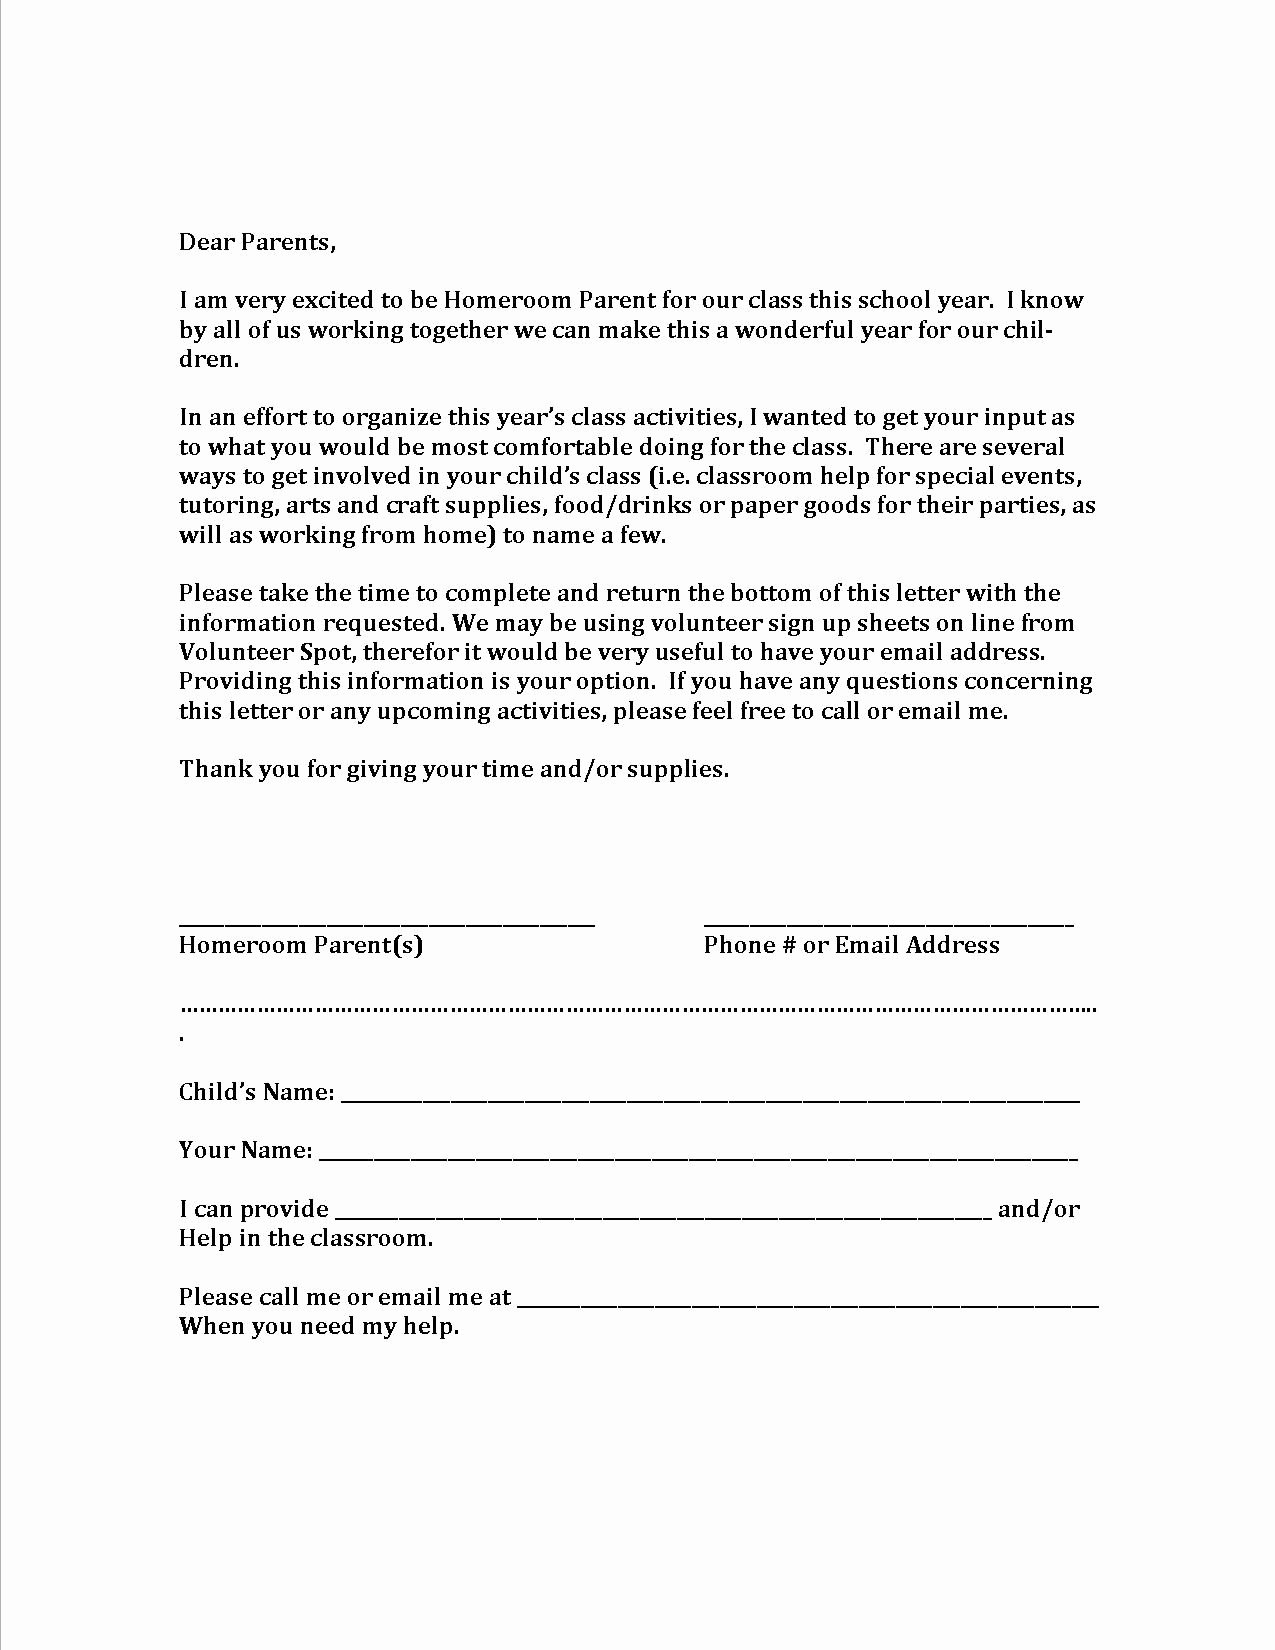 Letter to Parents Template Elegant Volunteer Letter Template Hdvolunteer Letter Template